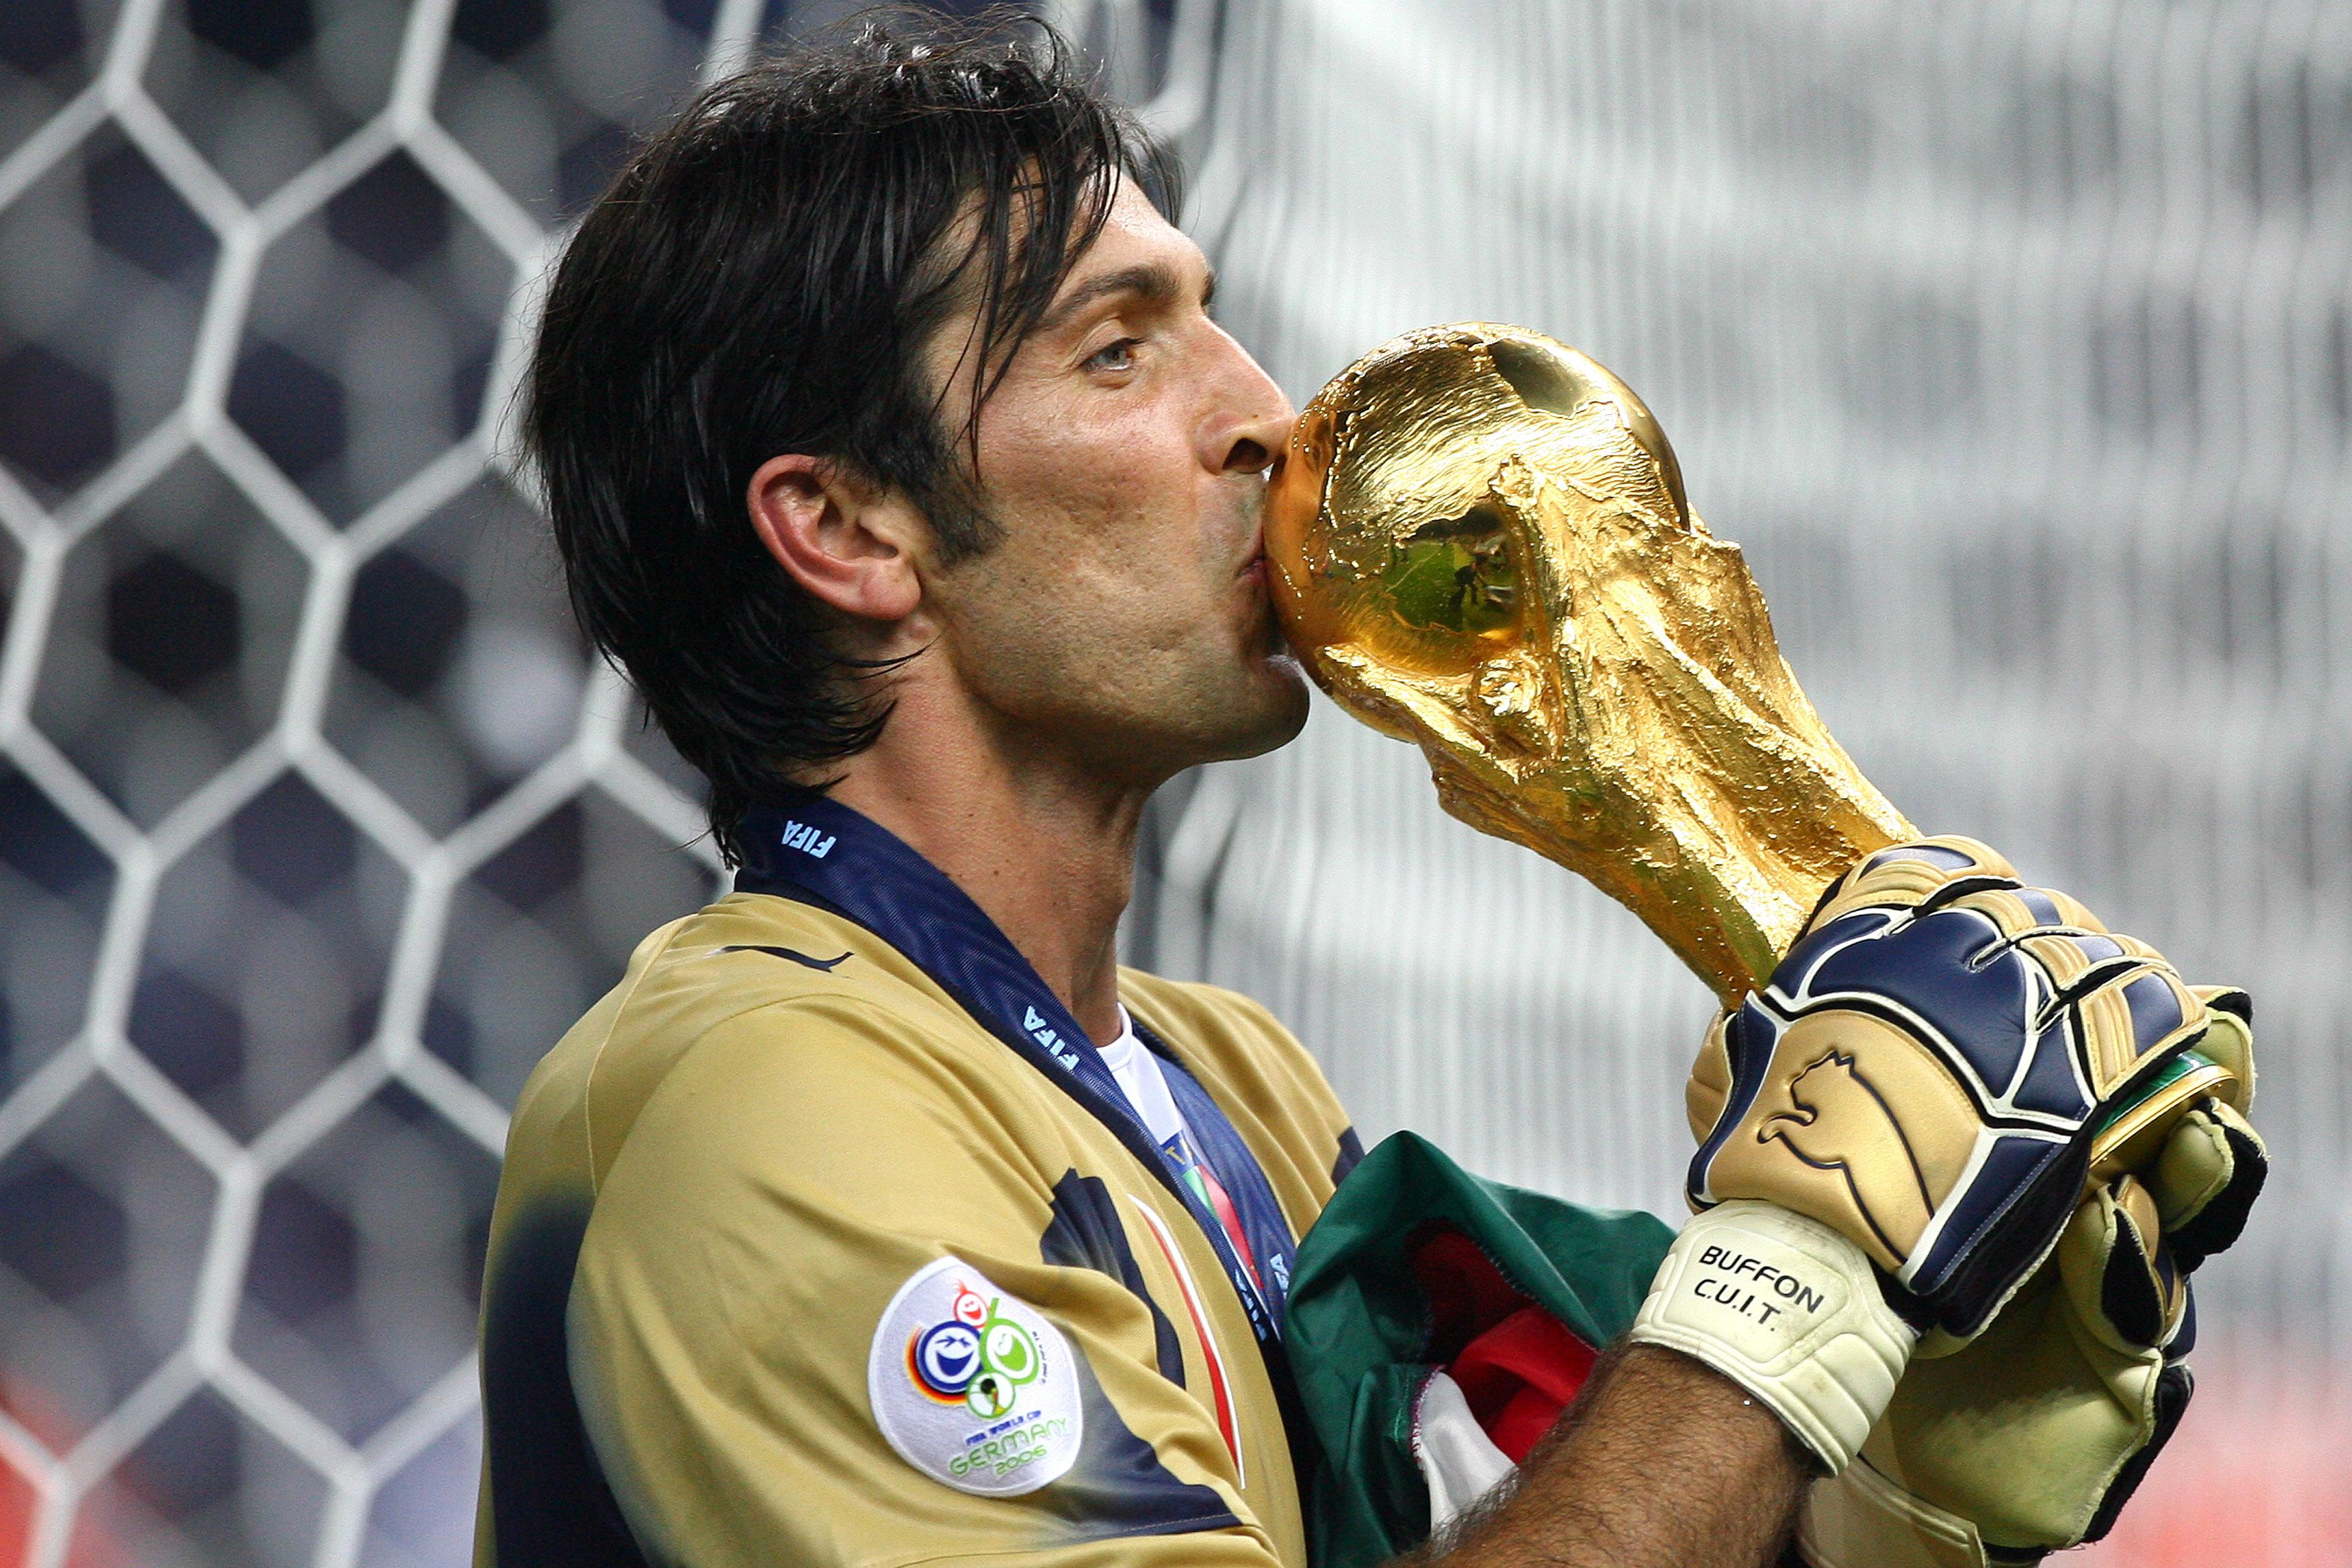 90ed7174d41 Gianluigi Buffon (ITA) celebrates with the trophy after the final of the  2006 FIFA